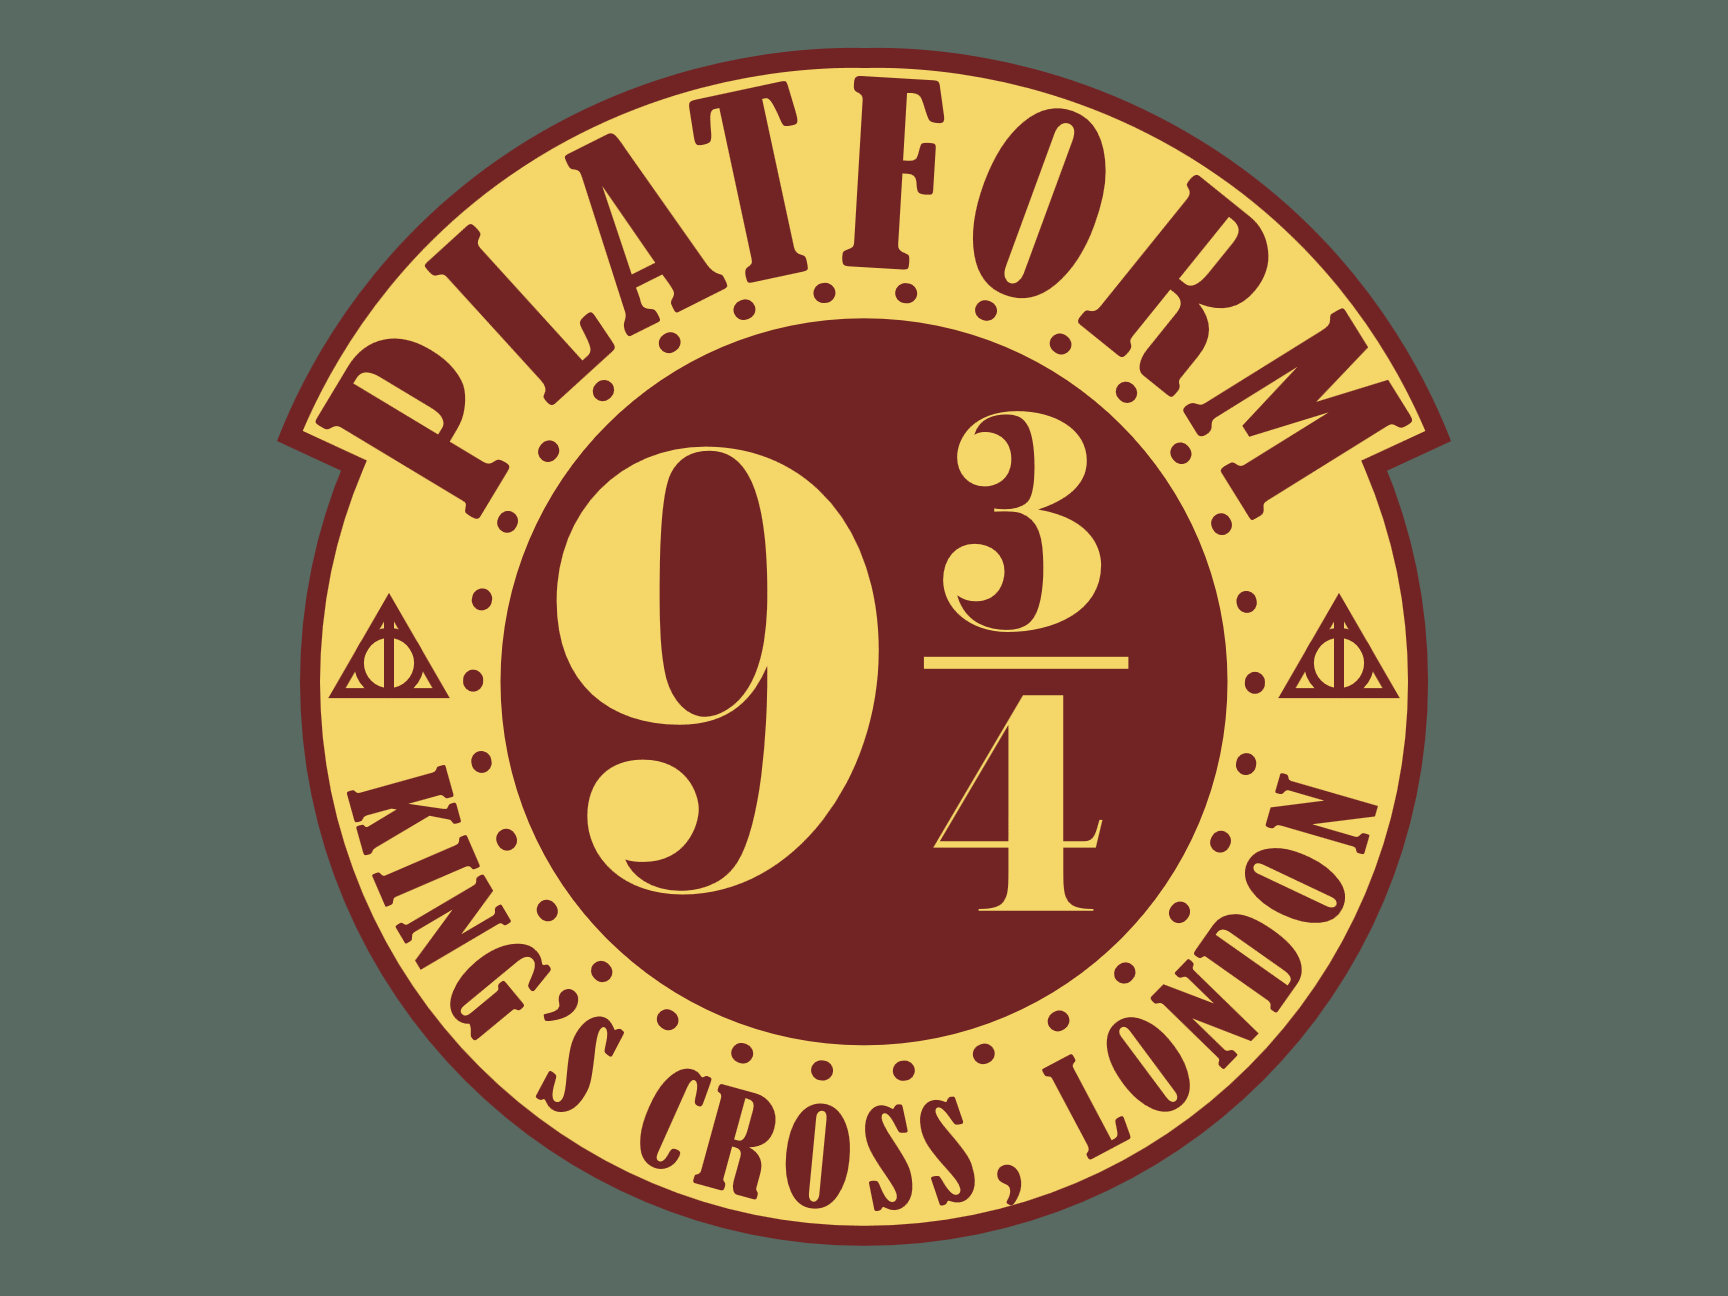 Harry Potter 9 and 3/4 vector badge created in Adobe